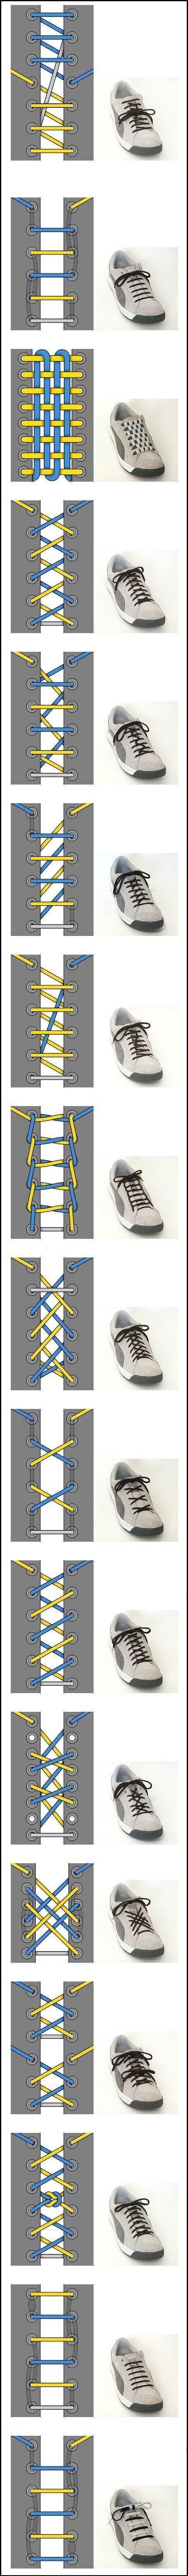 I'm sure this'll come in handy someday...if my kids aren't decked exclusively in velcro-fastened shoes. >> Shoe Lacing